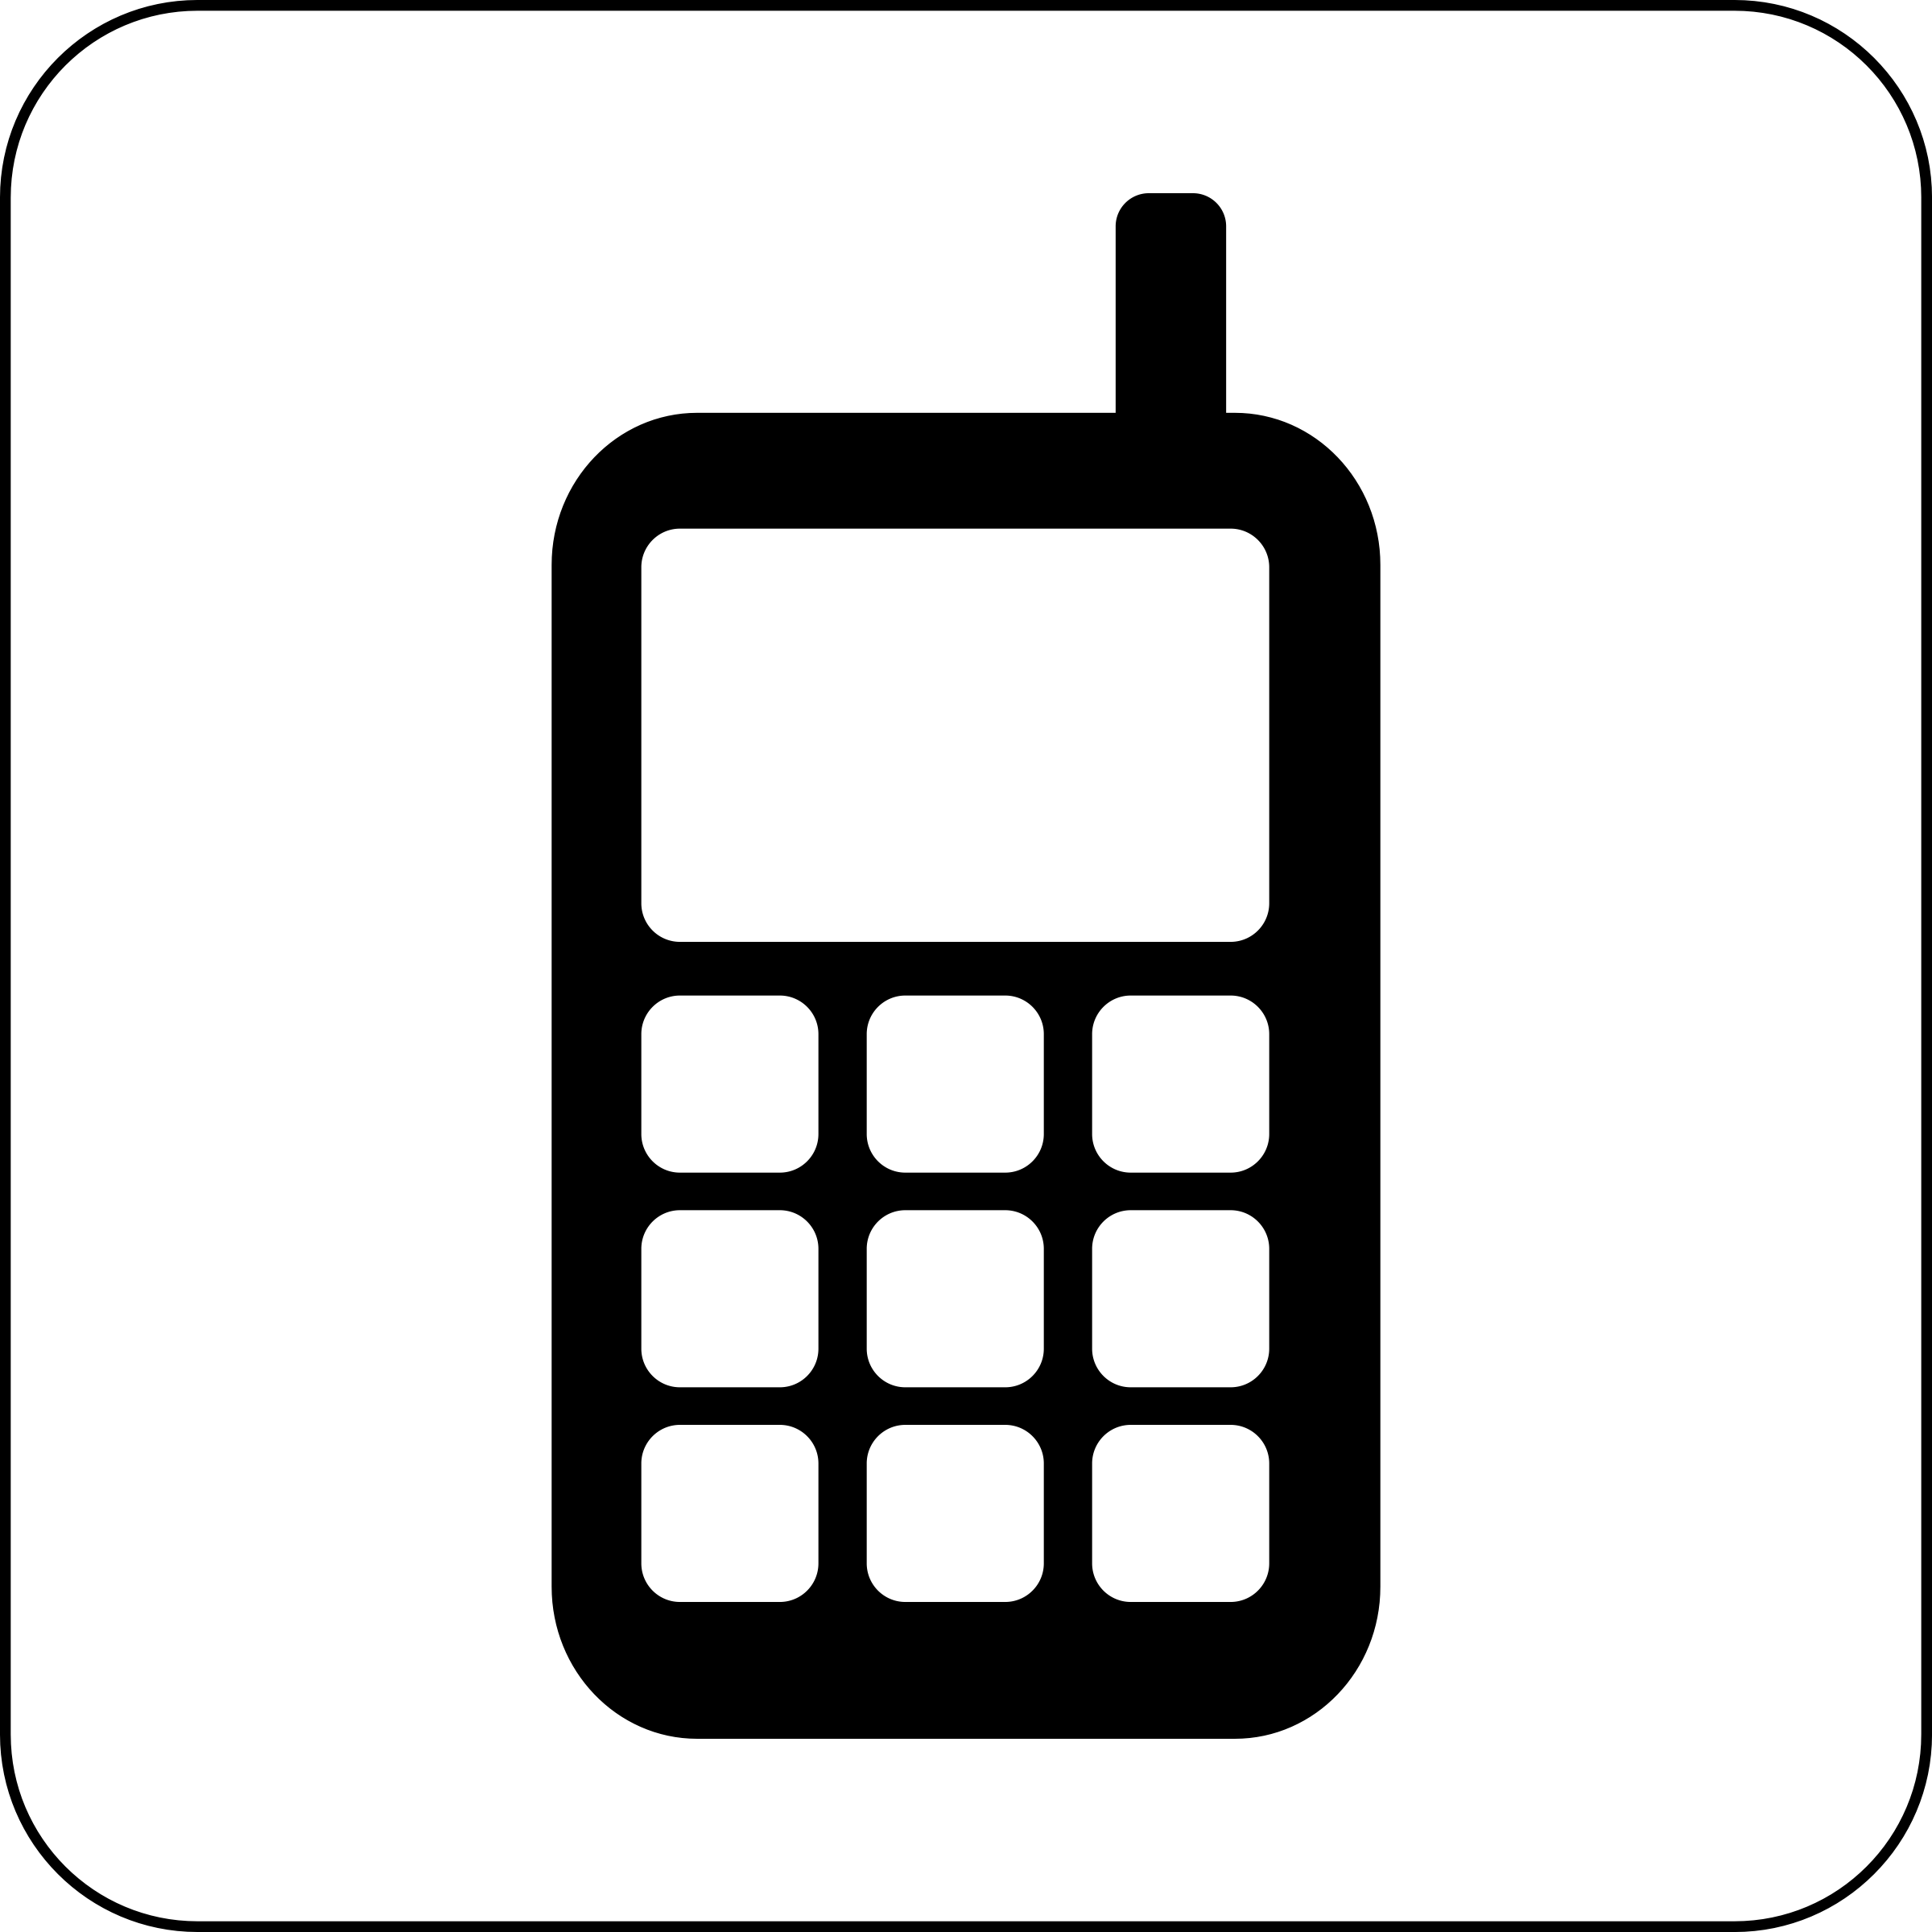 An icon of a big cellphone. Graphic by Cinemacookie.